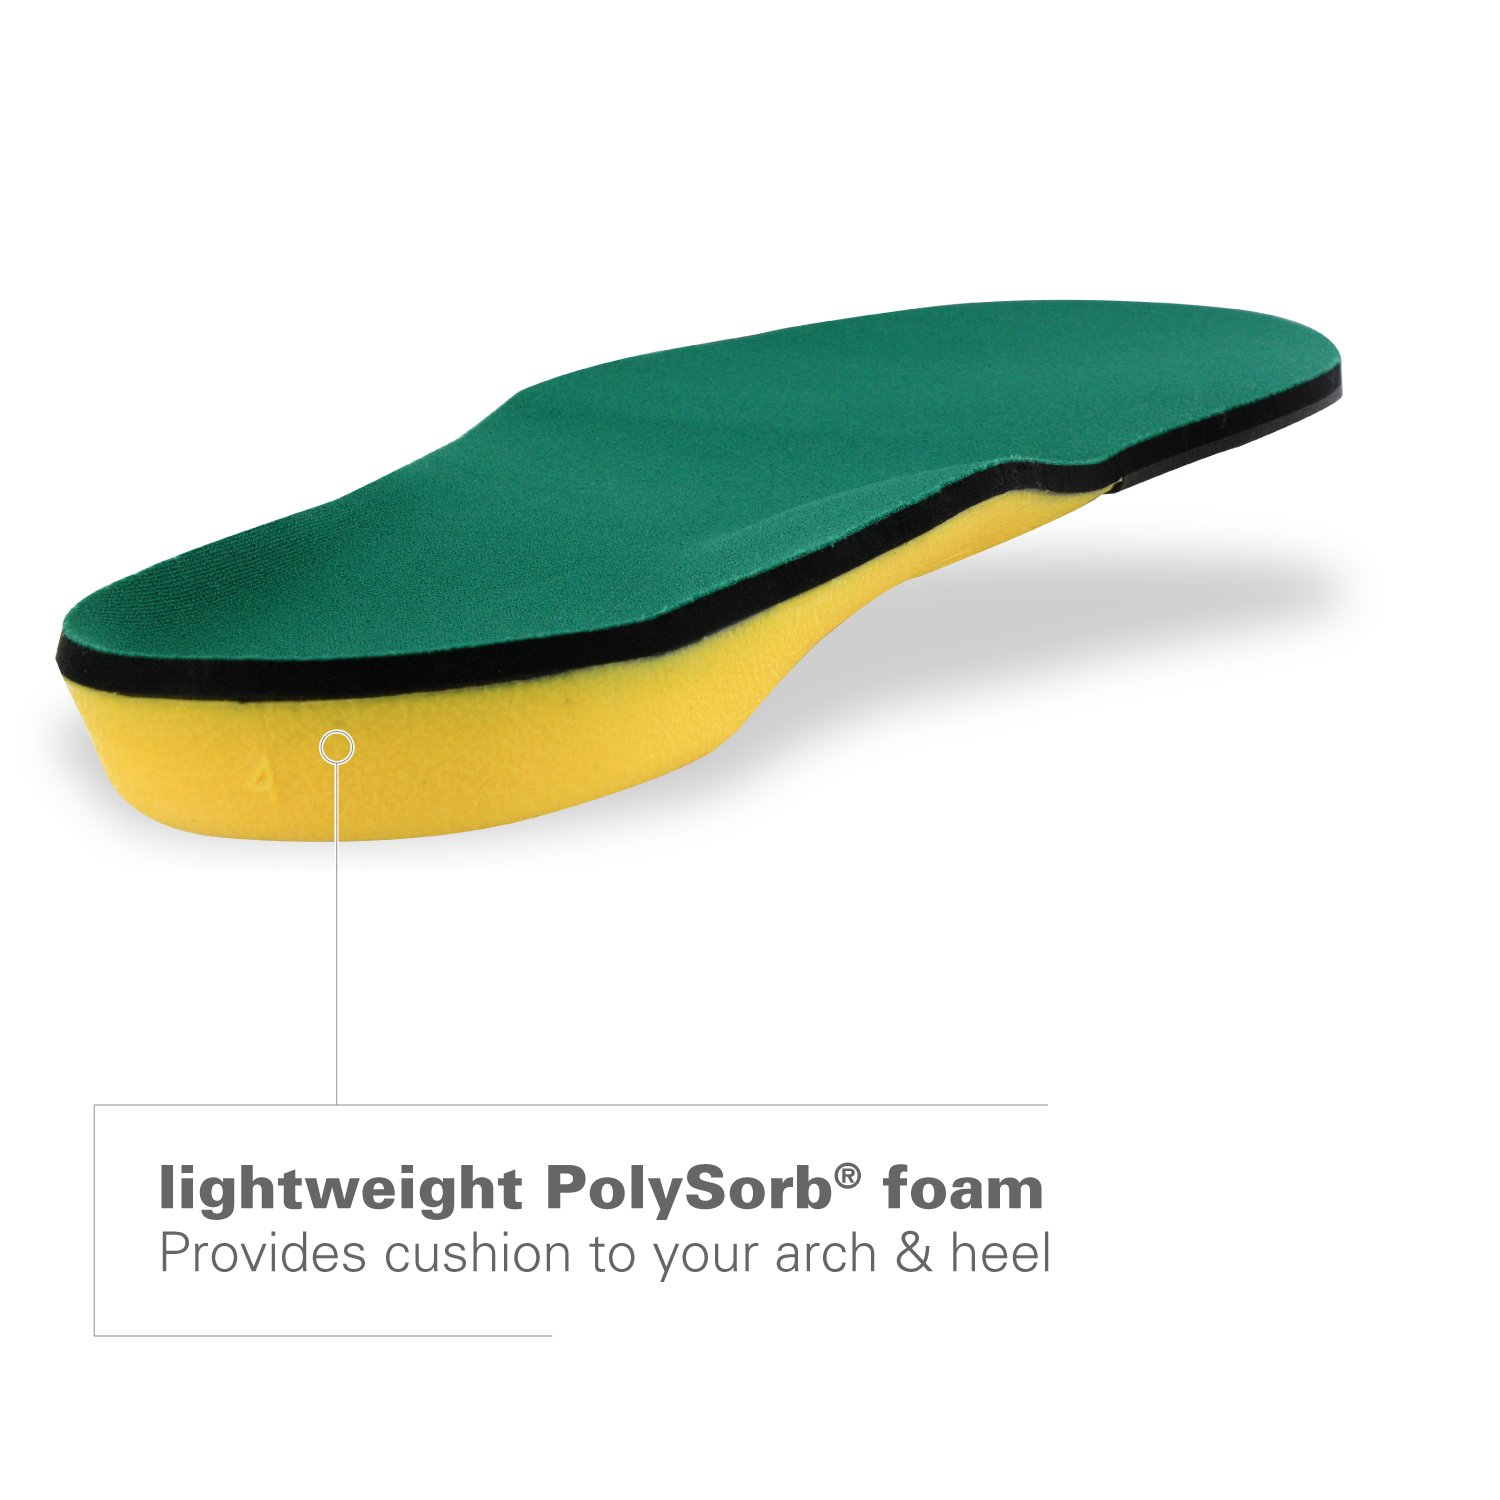 Spenco Polysorb Heavy Duty Maximum All Day Comfort and Support Shoe Insole, Women's 11-12.5/Men's 10-11.5 by Spenco (Image #3)